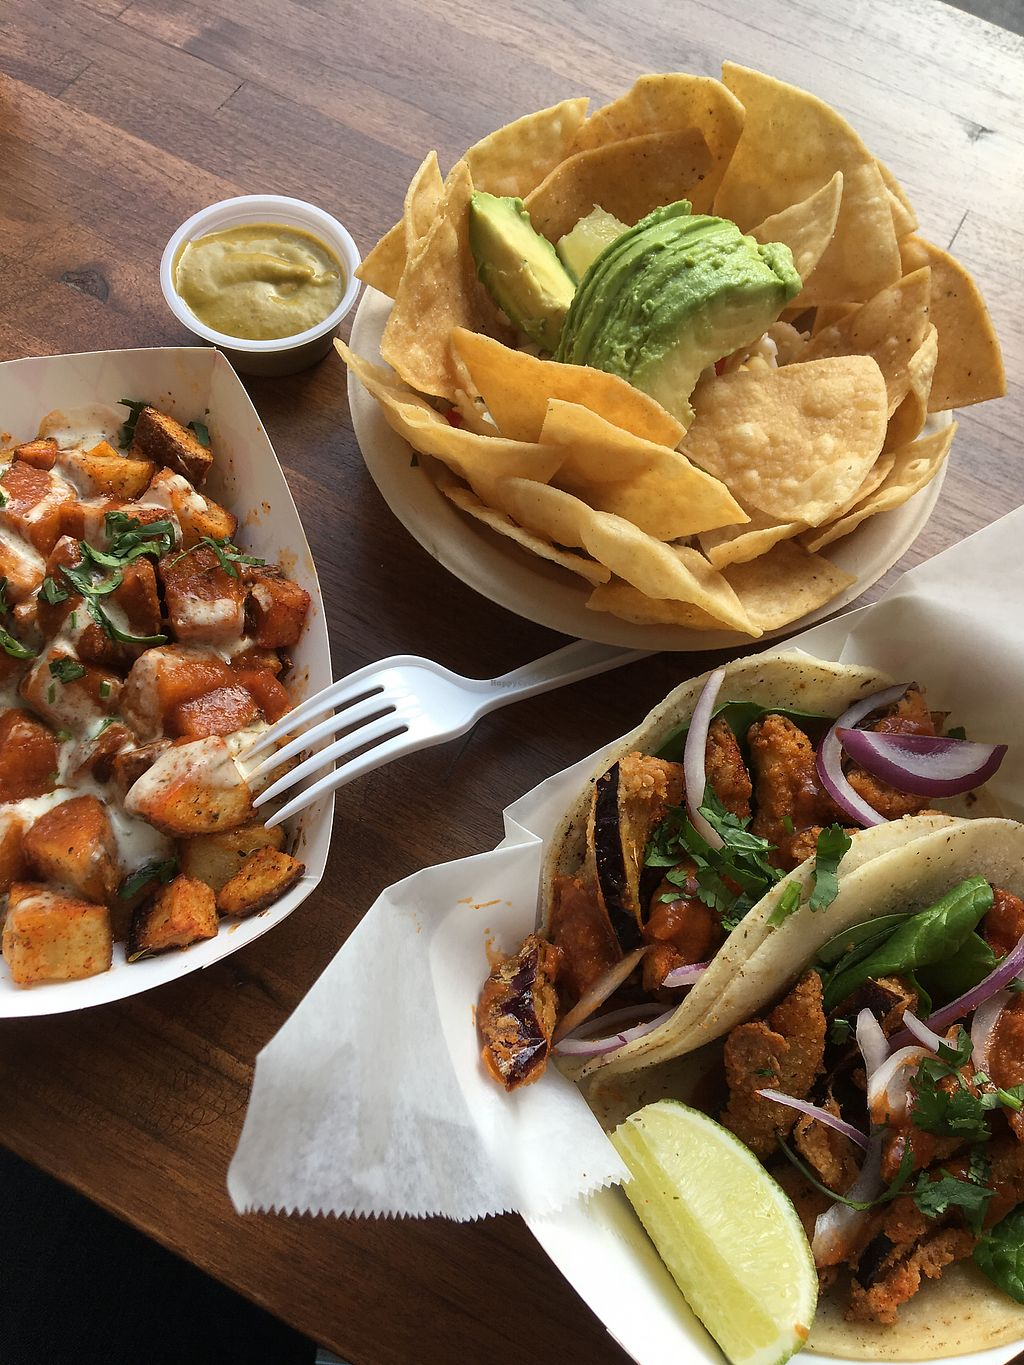 """Photo of Chisme Cantina  by <a href=""""/members/profile/Aufziehvoegelchen"""">Aufziehvoegelchen</a> <br/>Cauliflower ceviche, patatas, eggplant tacos  <br/> February 4, 2018  - <a href='/contact/abuse/image/103615/354975'>Report</a>"""